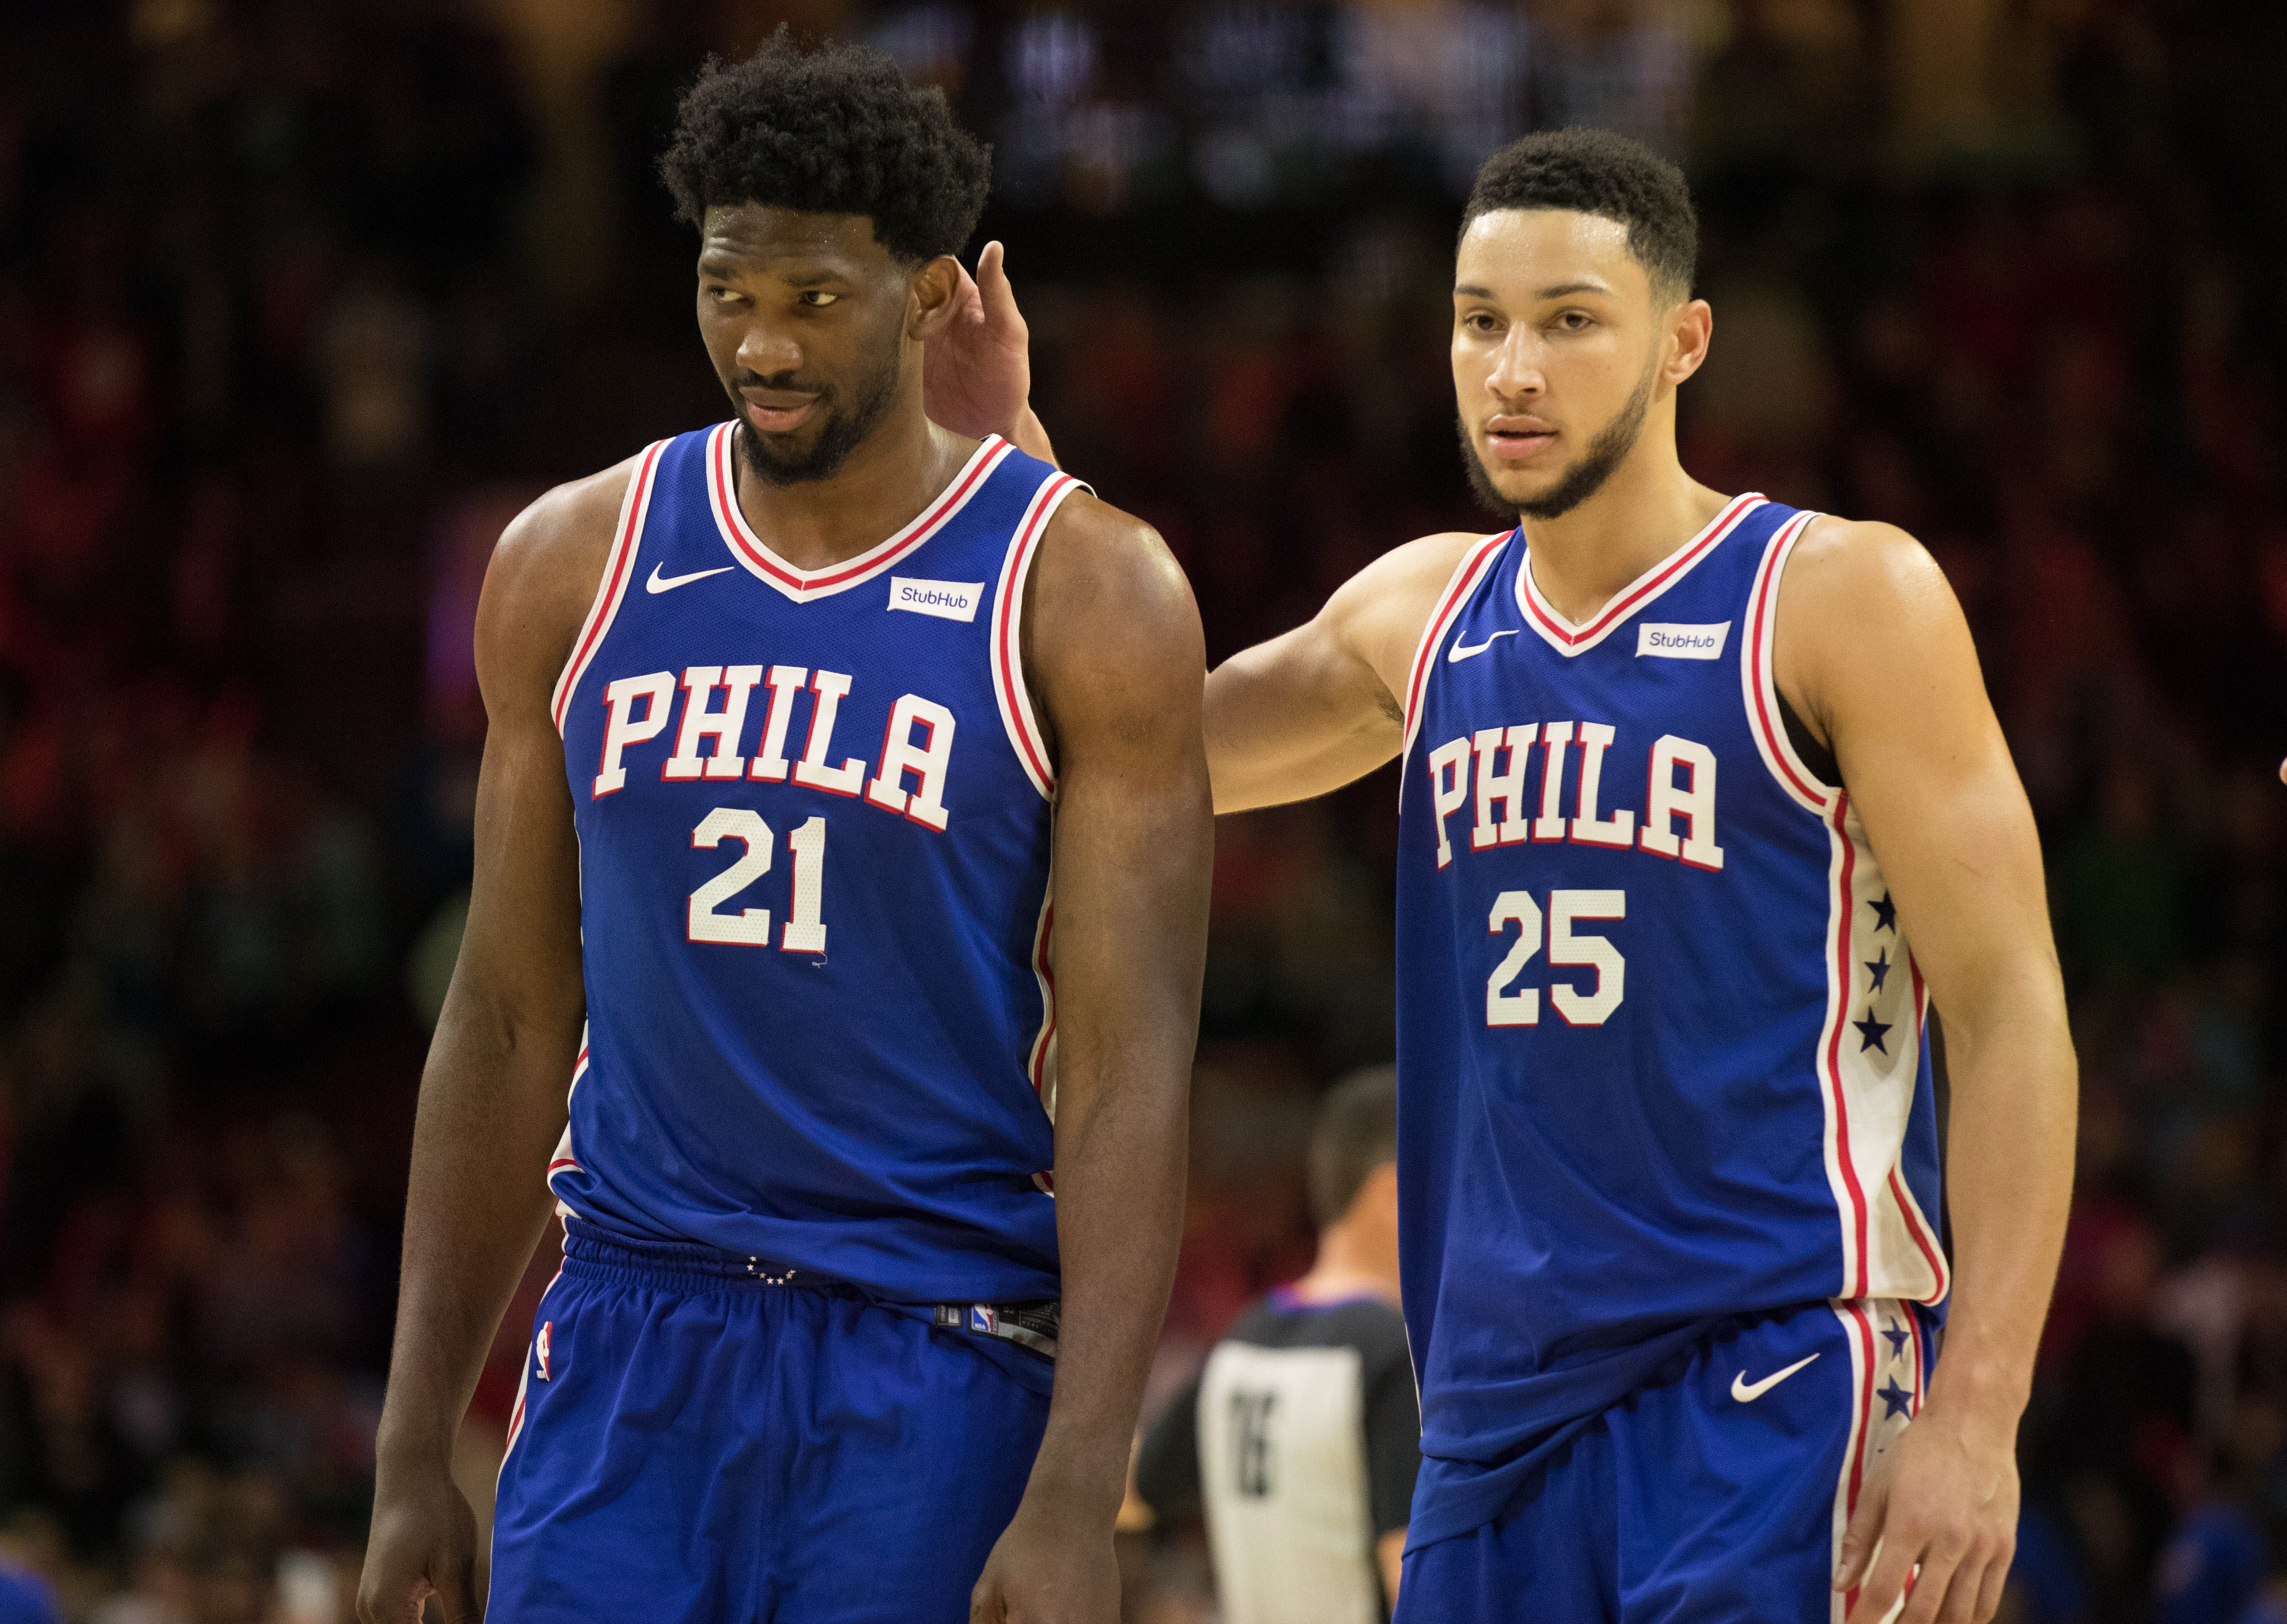 Brace Yourselves, Sixers Fans, because a Run is Coming